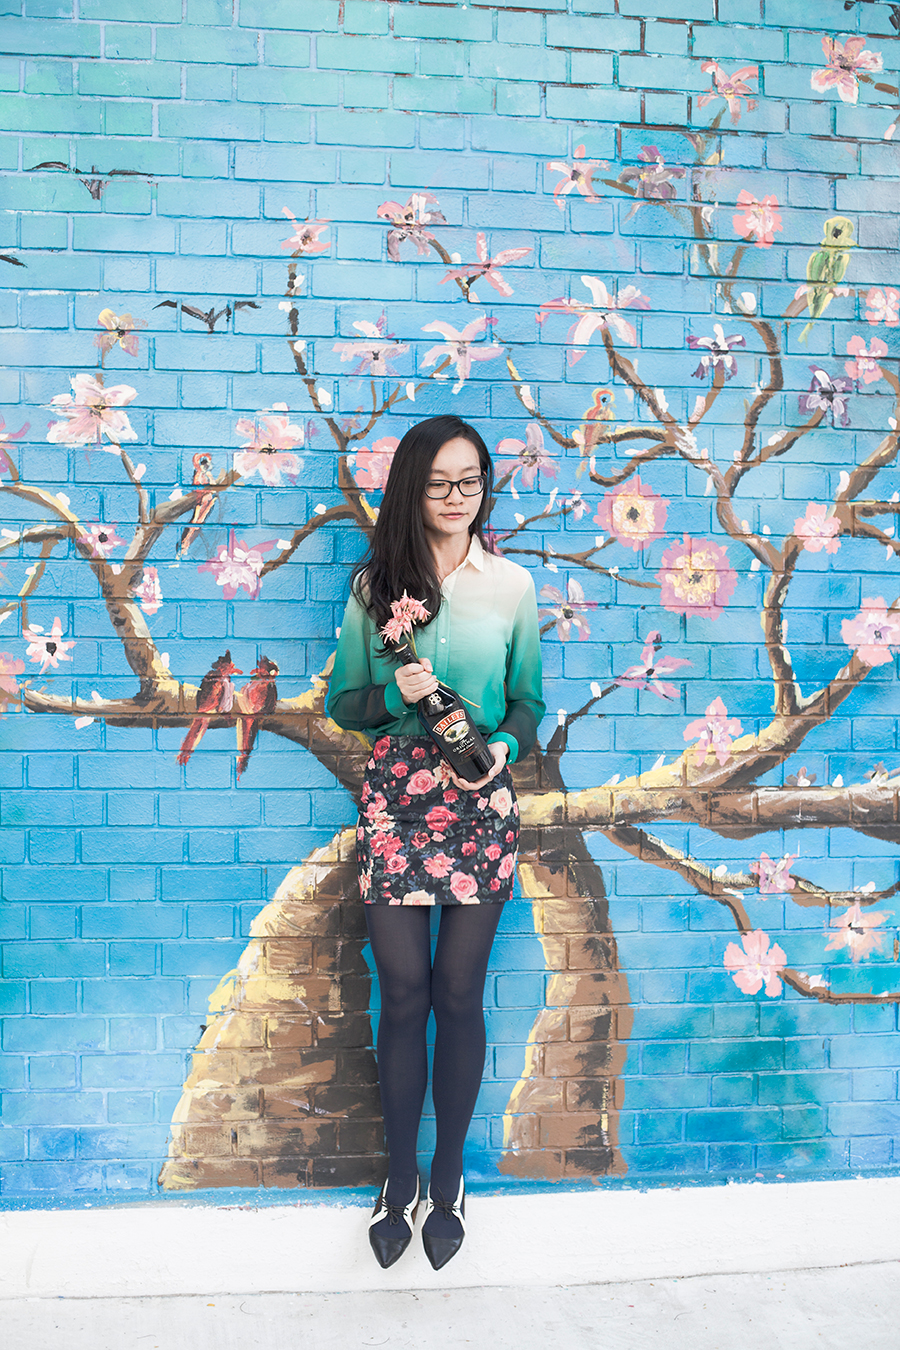 Floral outfit: Romwe green ombre chiffon shirt, Forever 21 floral skirt, Something Borrowed cutout oxford flats, Gap glasses. A bottle of Baileys.